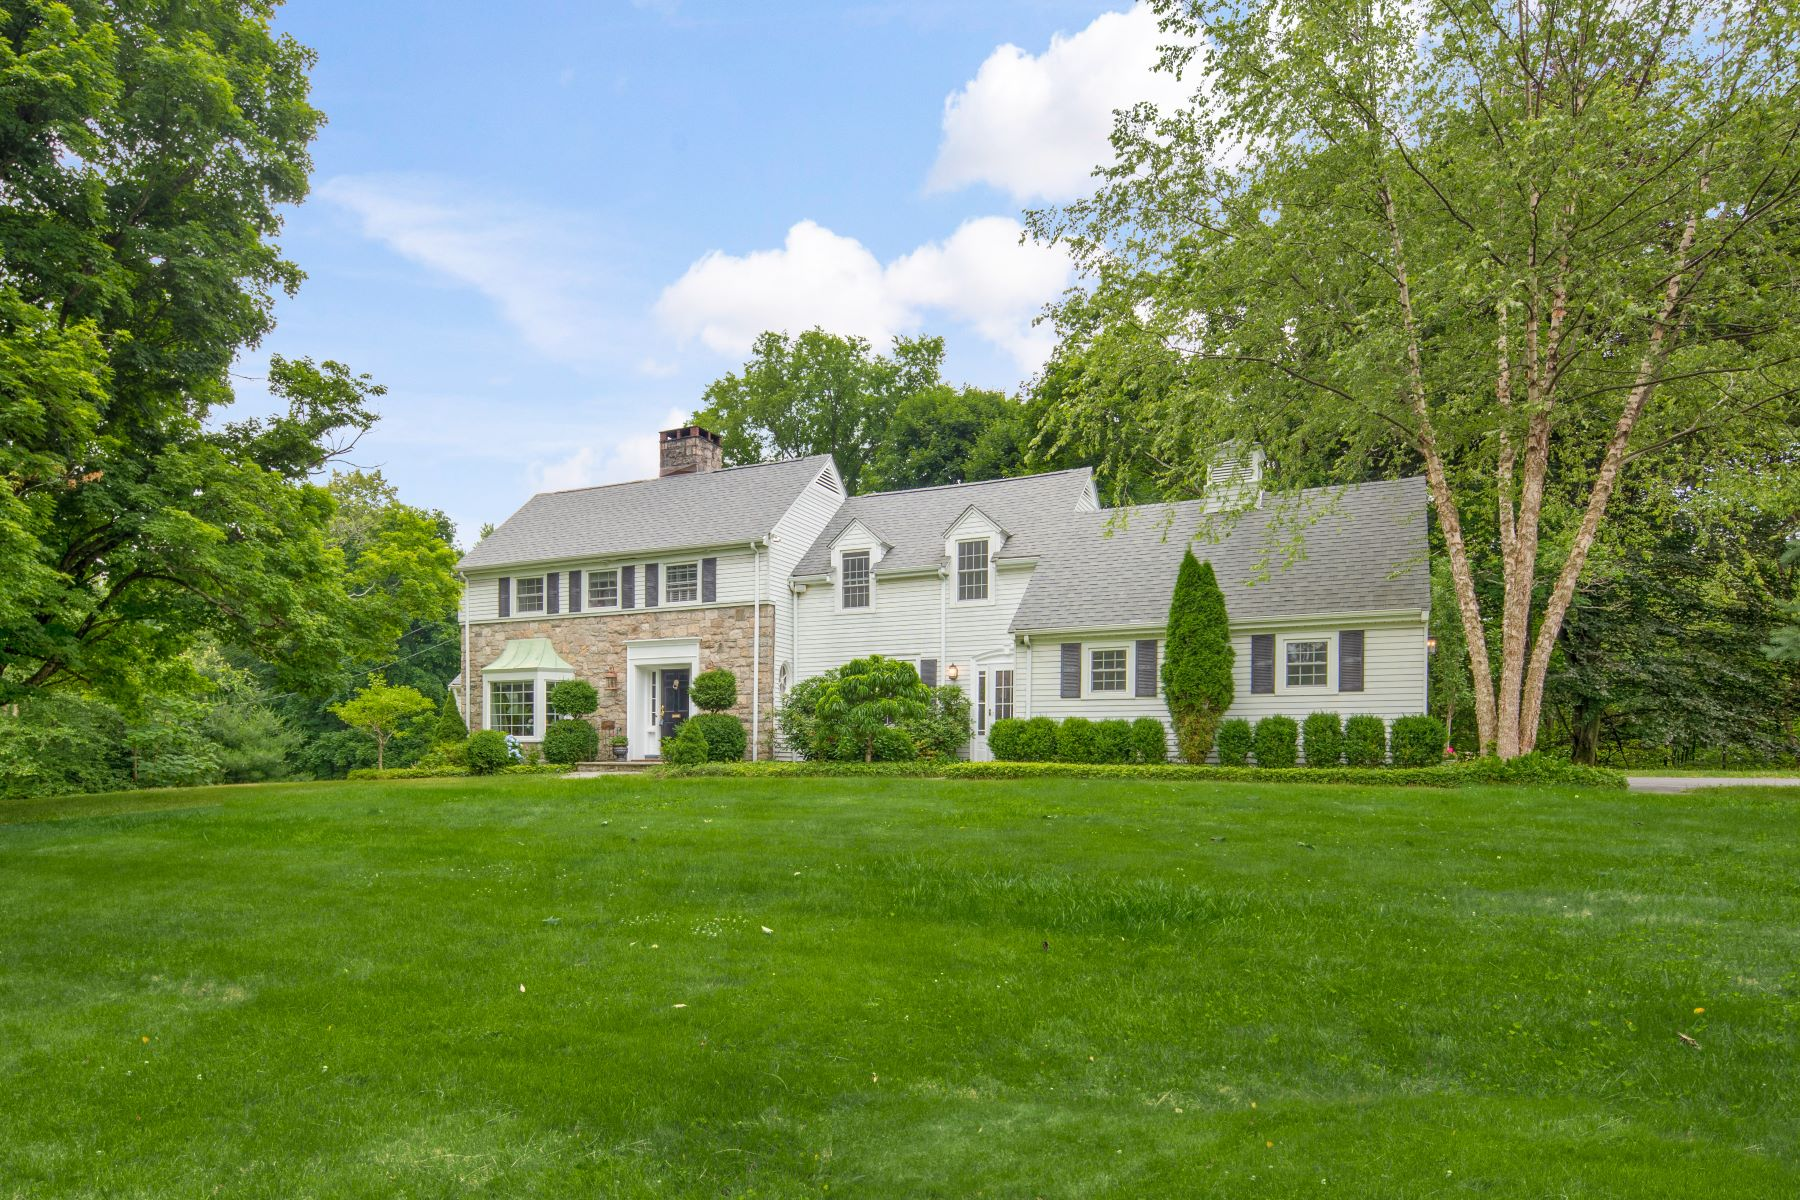 Single Family Homes for Sale at Classic Colonial 10-12 Gregory Street, Danbury, Connecticut 06811 United States